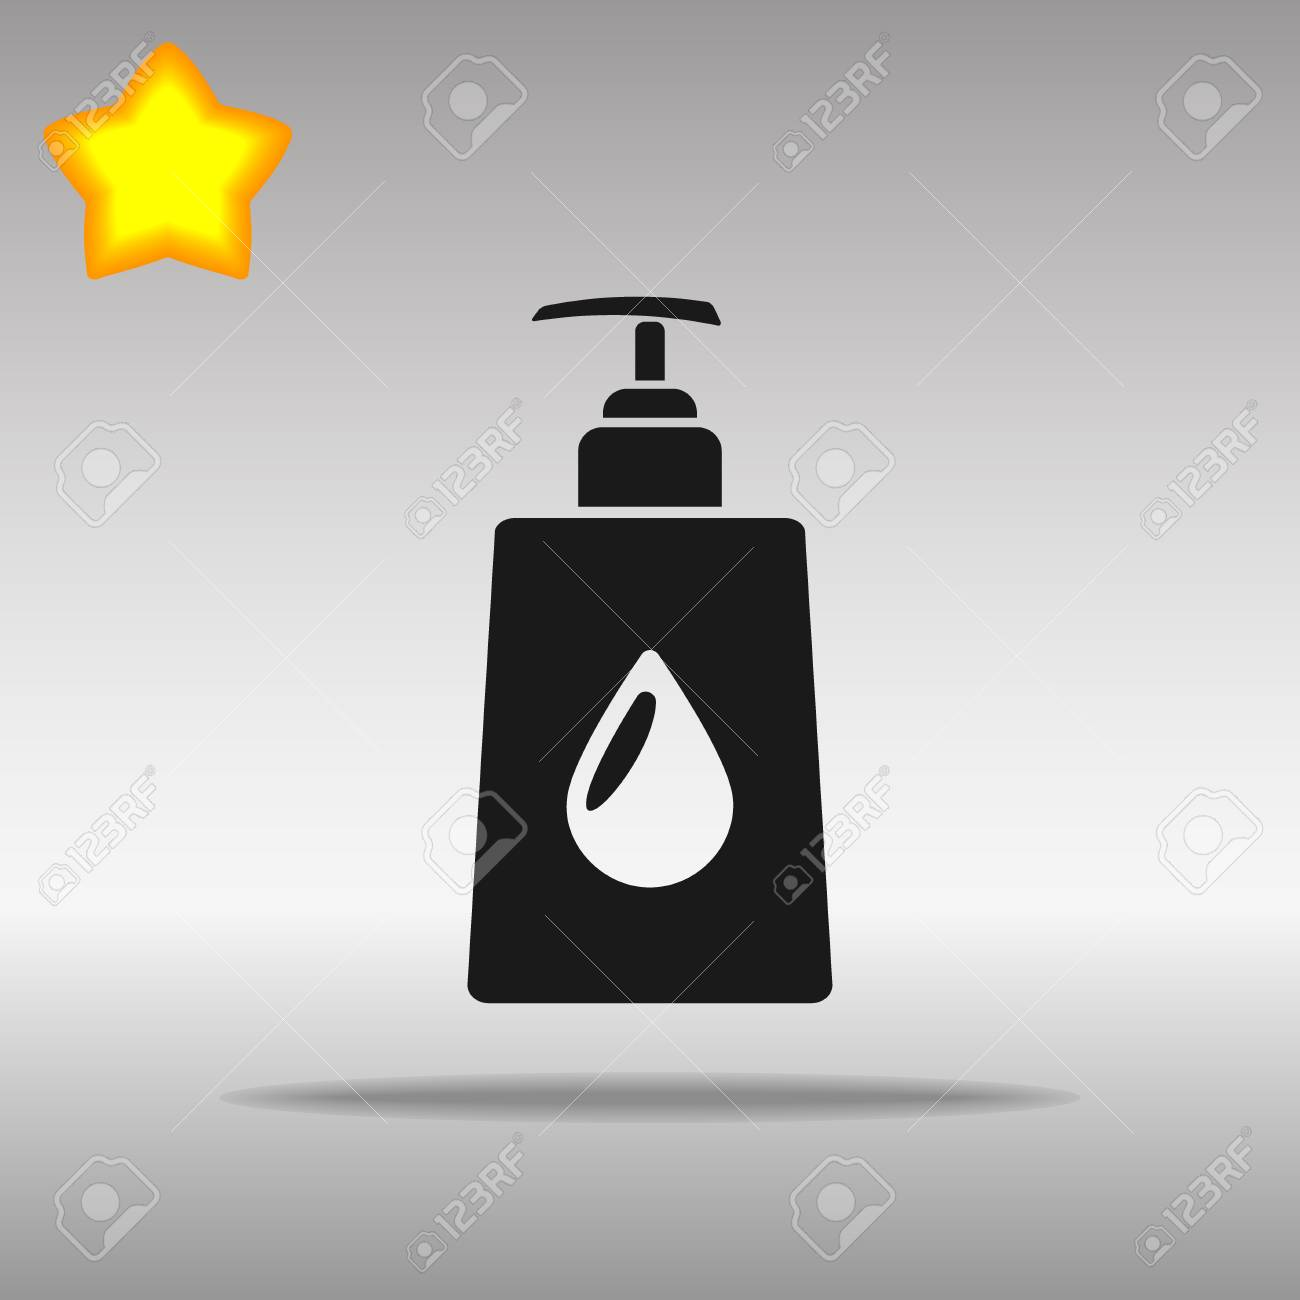 liquid soap black Icon button logo symbol concept high quality on the gray background - 79142253